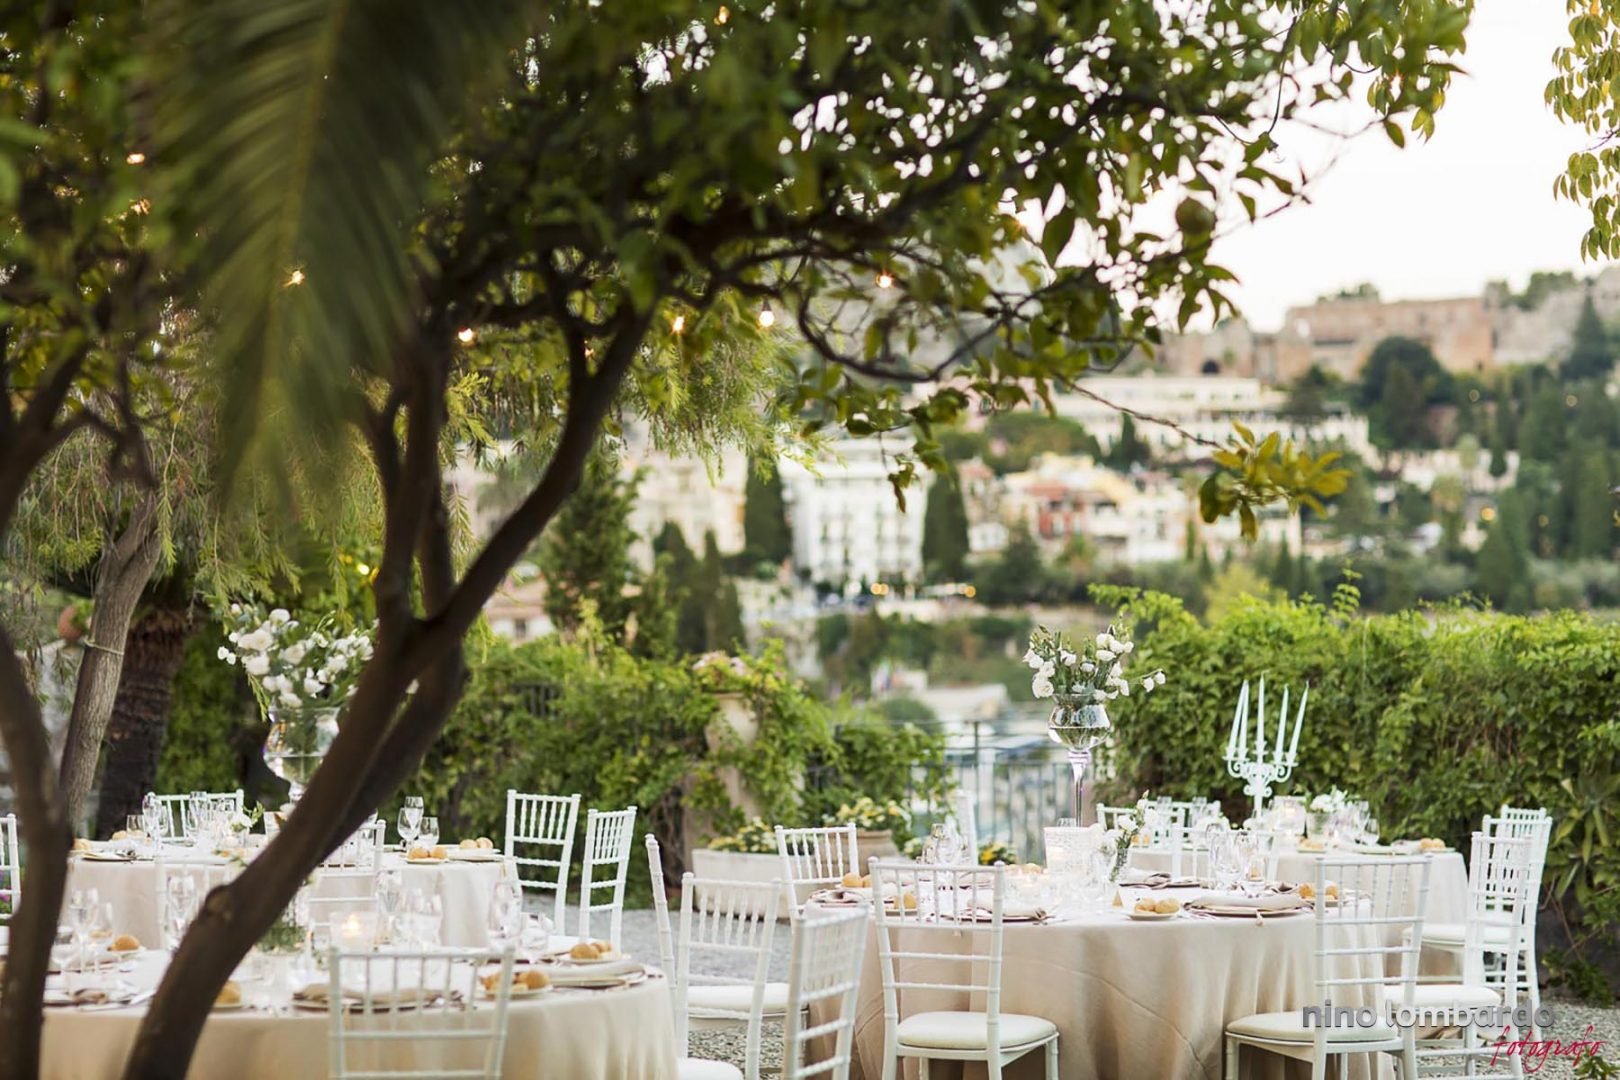 Photographer for Wedding in Taormina Sicily, realized photo shoot candid and elegant with photojournalism style in Hotel Timeo and San Domenico Palace